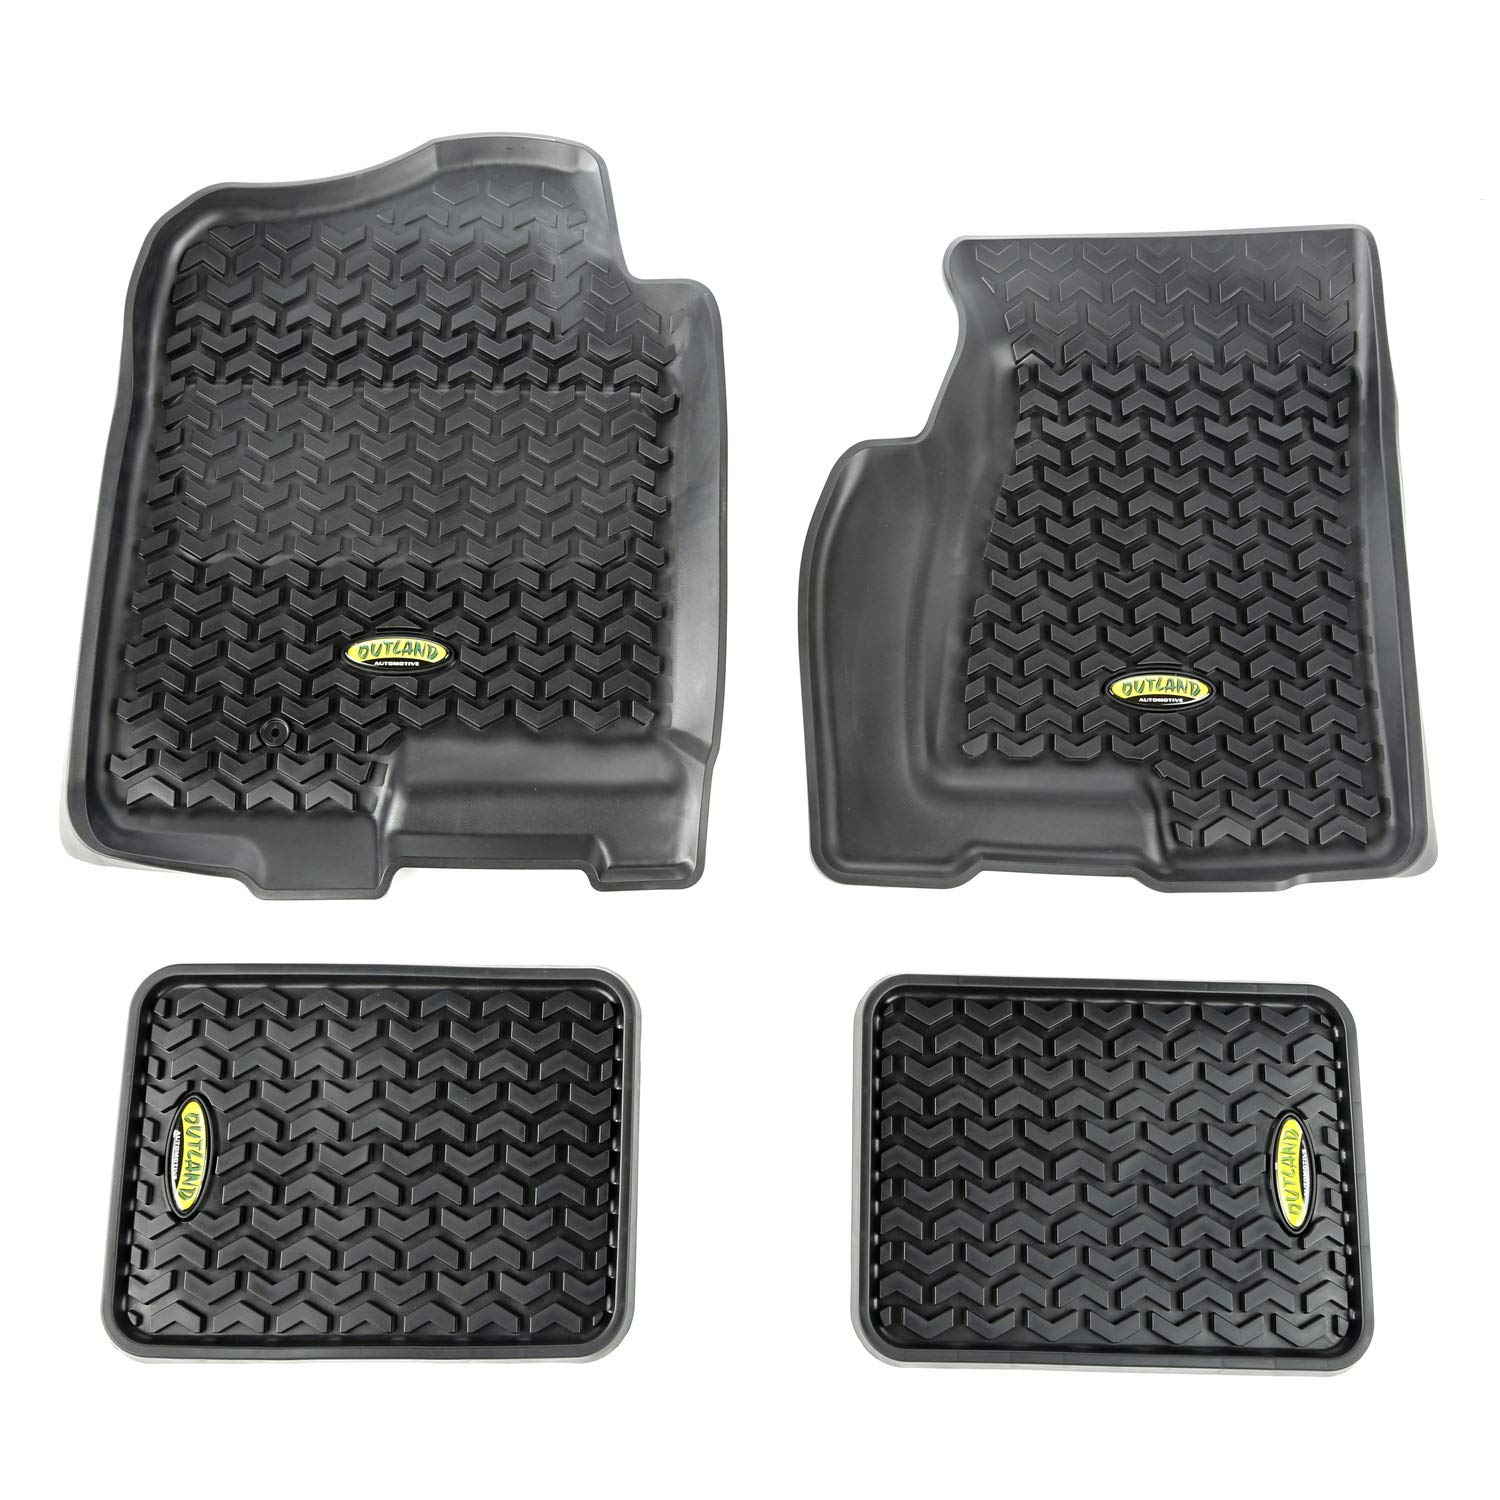 Outland Black Front and Rear Floor Liner Kit For Select Cadillac Escalade Suburban Silverado Tahoe GMC Sierra and Yukon Models Chevrolet Avalanche